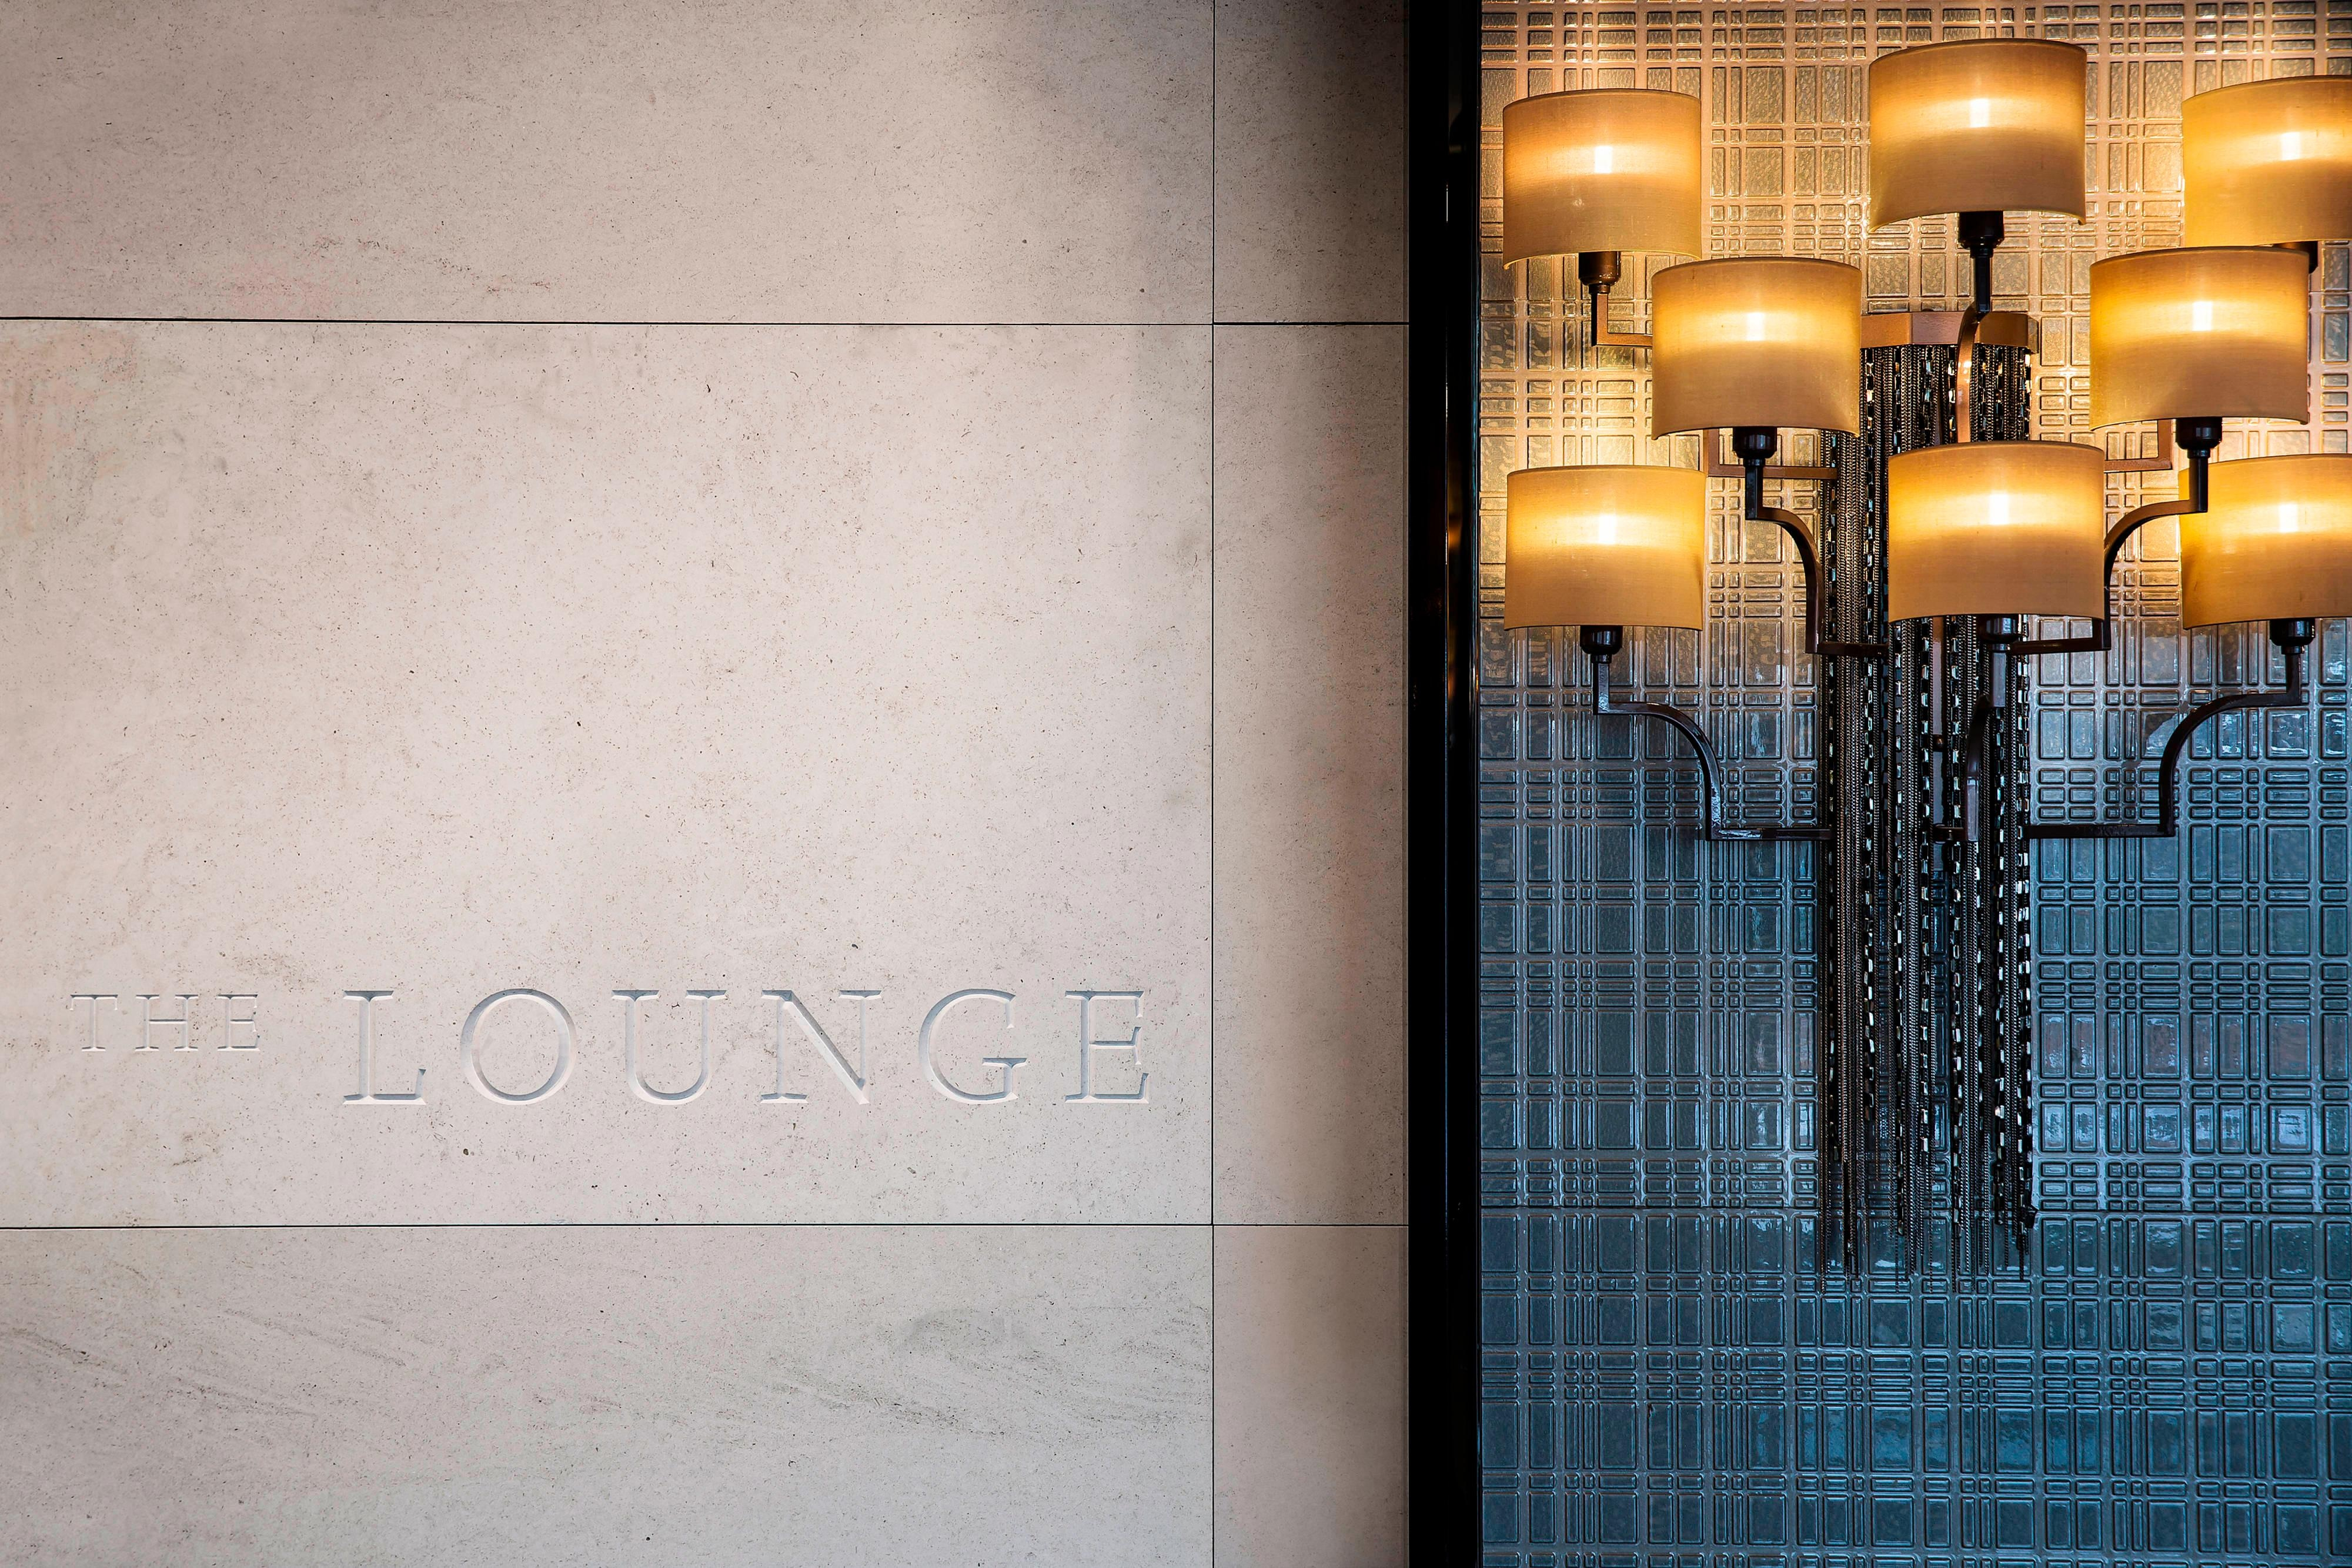 The Lounge - Entrance